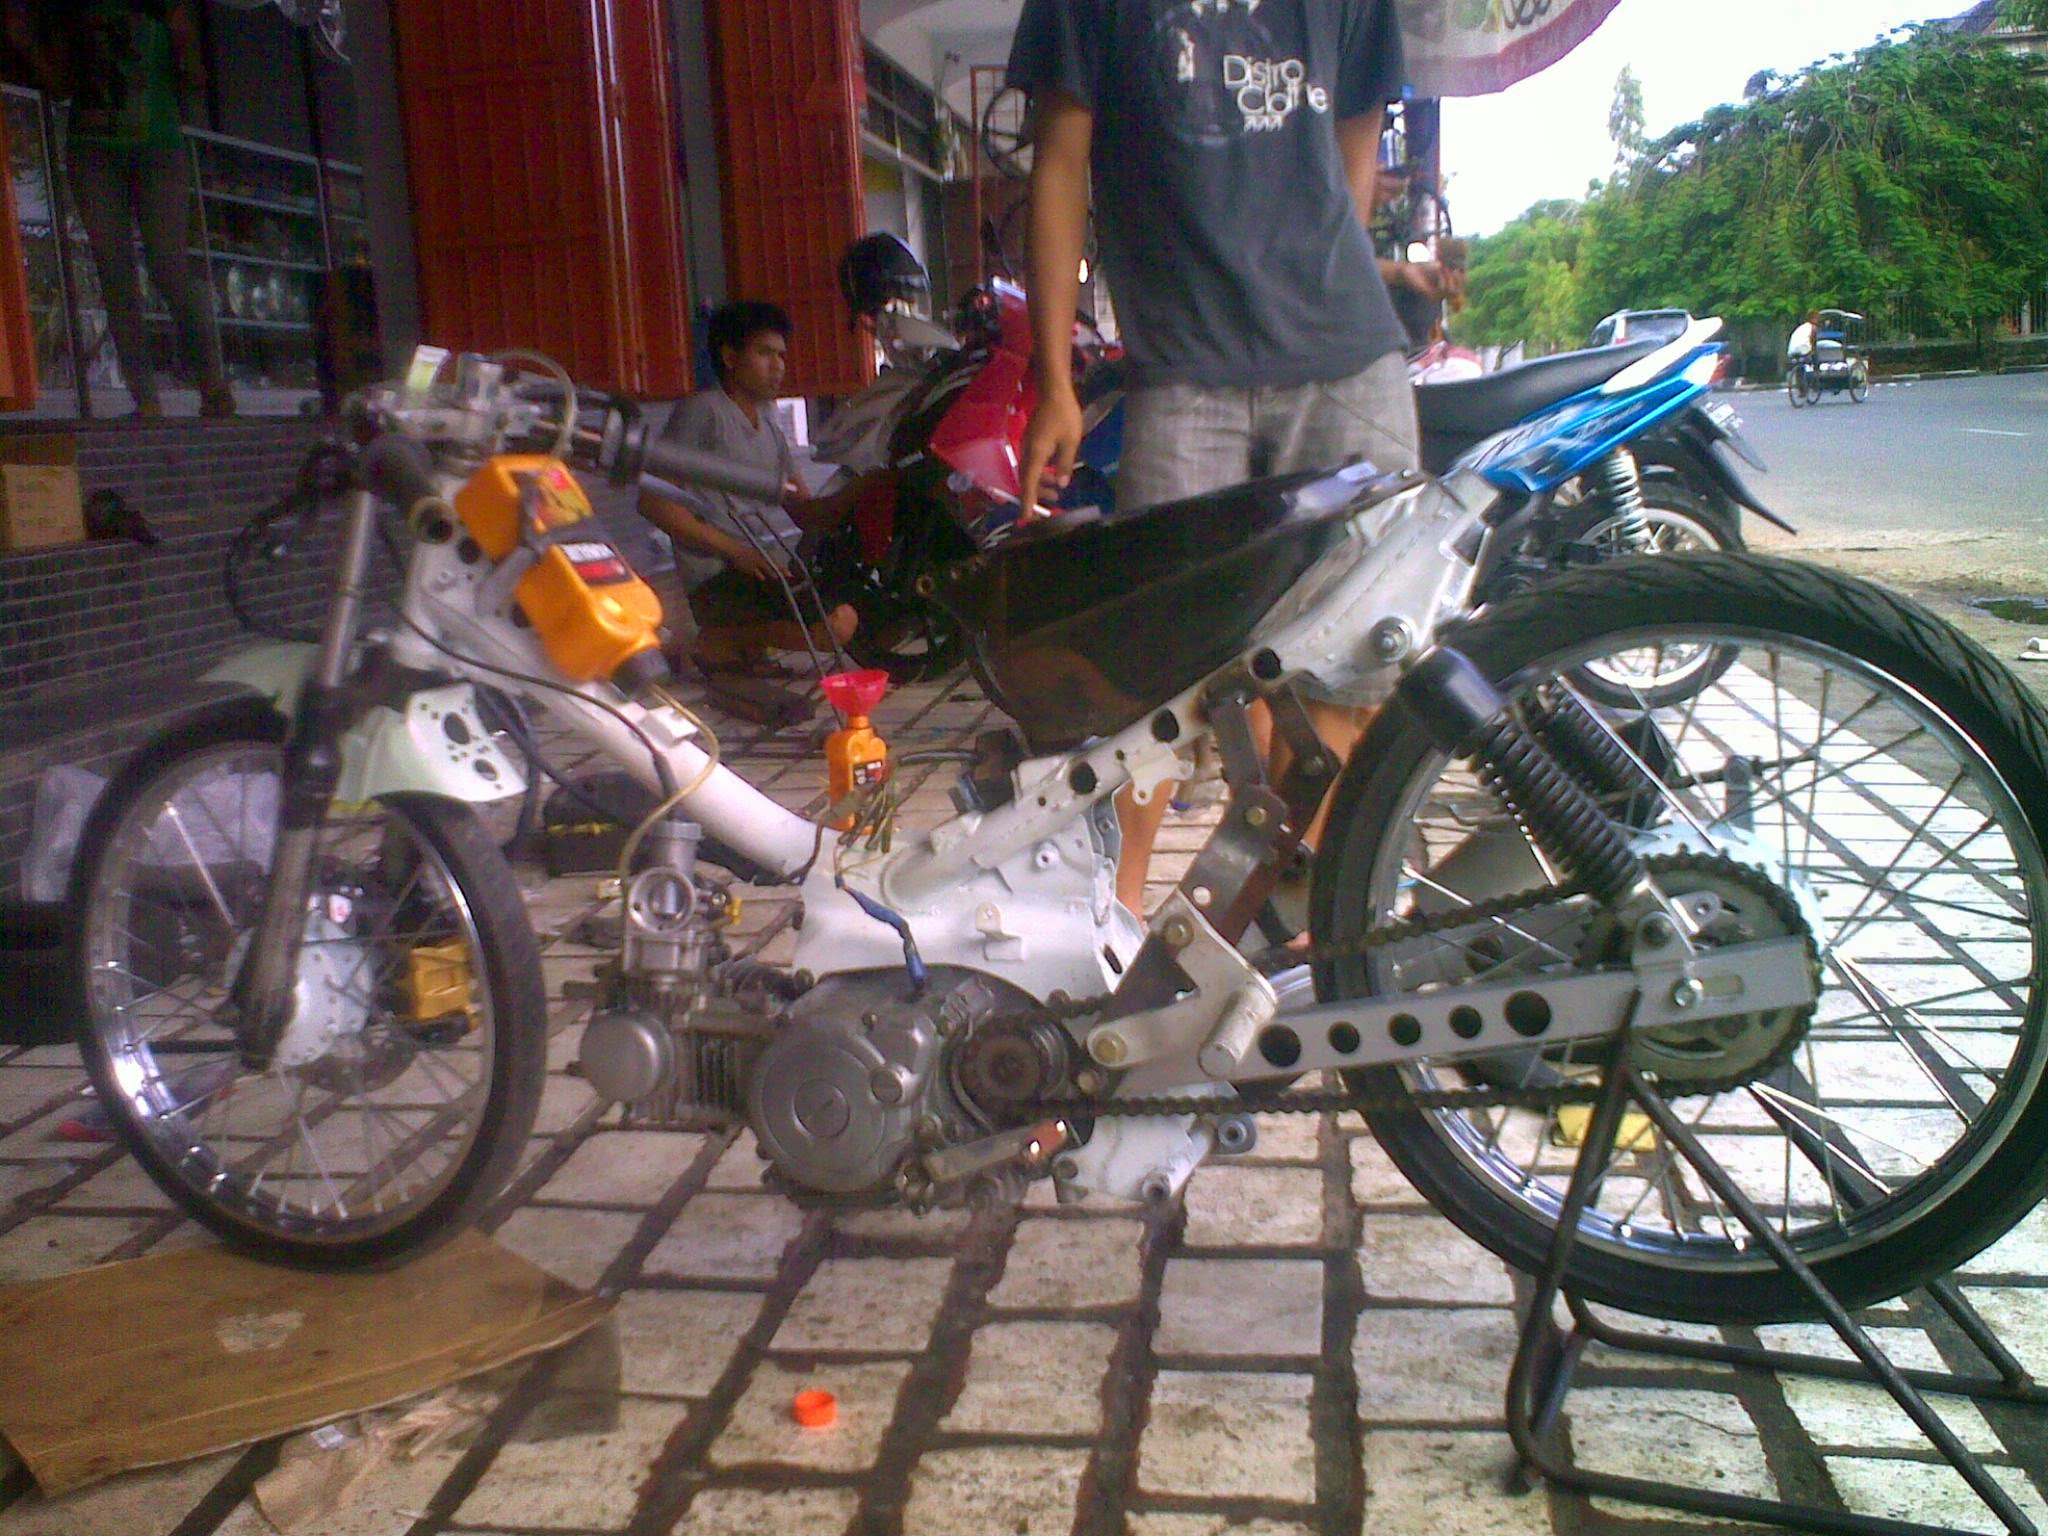 Download image Jupiter Mx Modifikasi Drag Simple 1164 Bejo Jpg PC